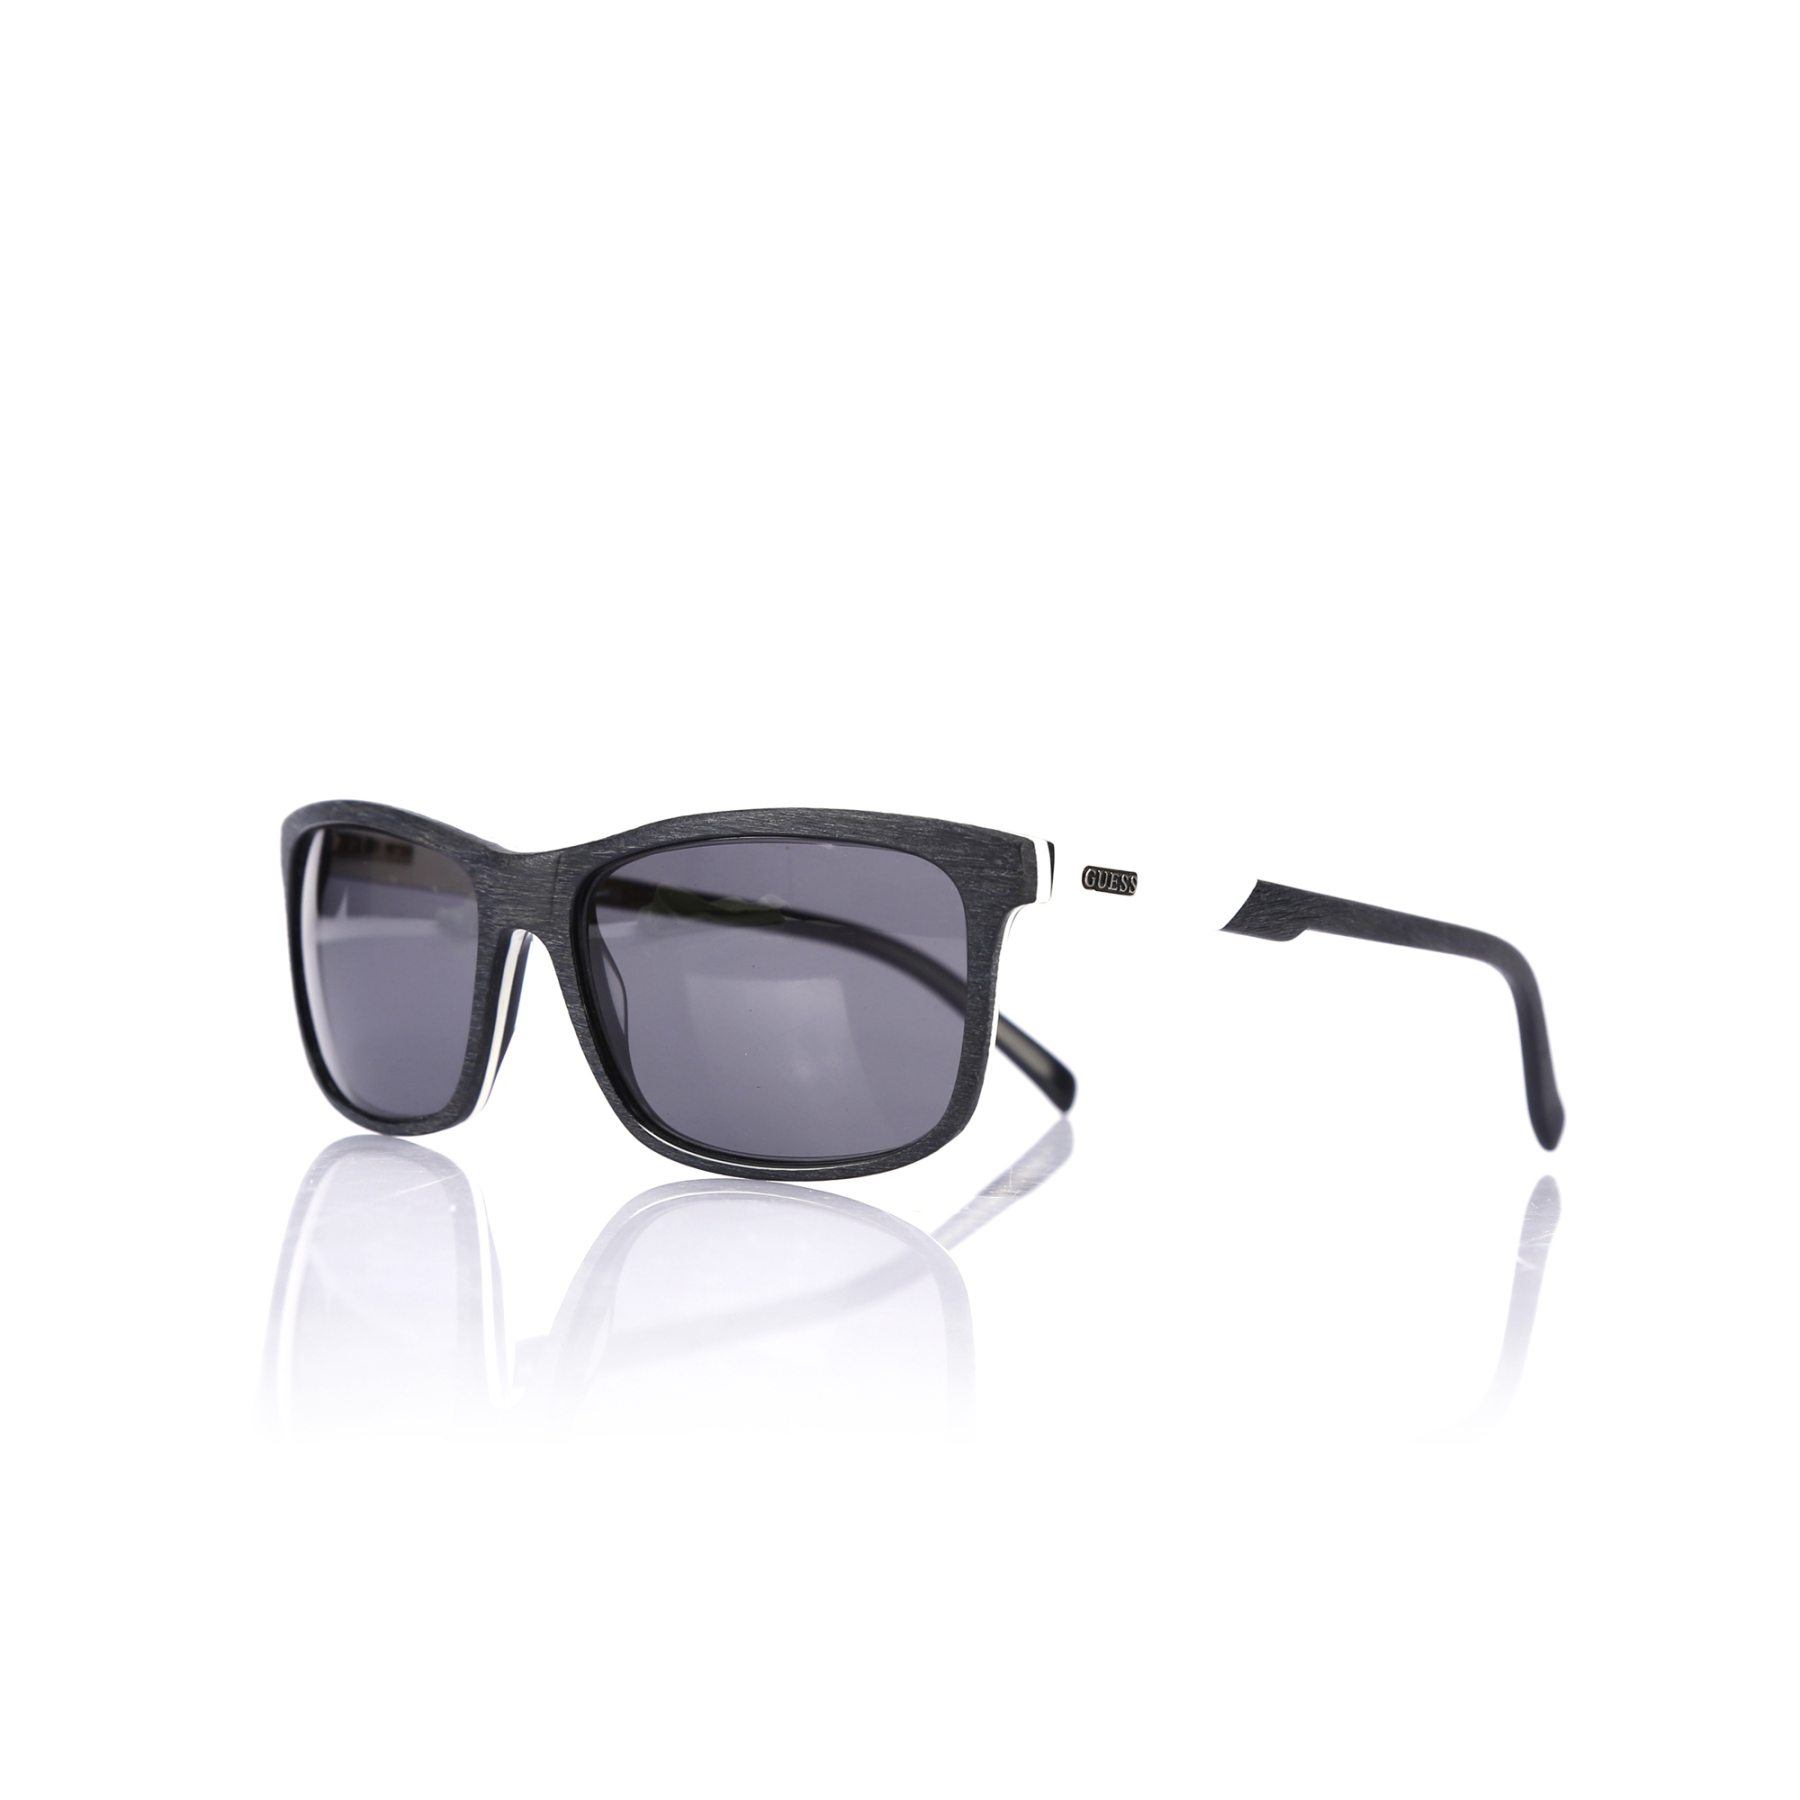 Men's sunglasses gu 1845 blkwht bone black organic square square 56-16-145 guess